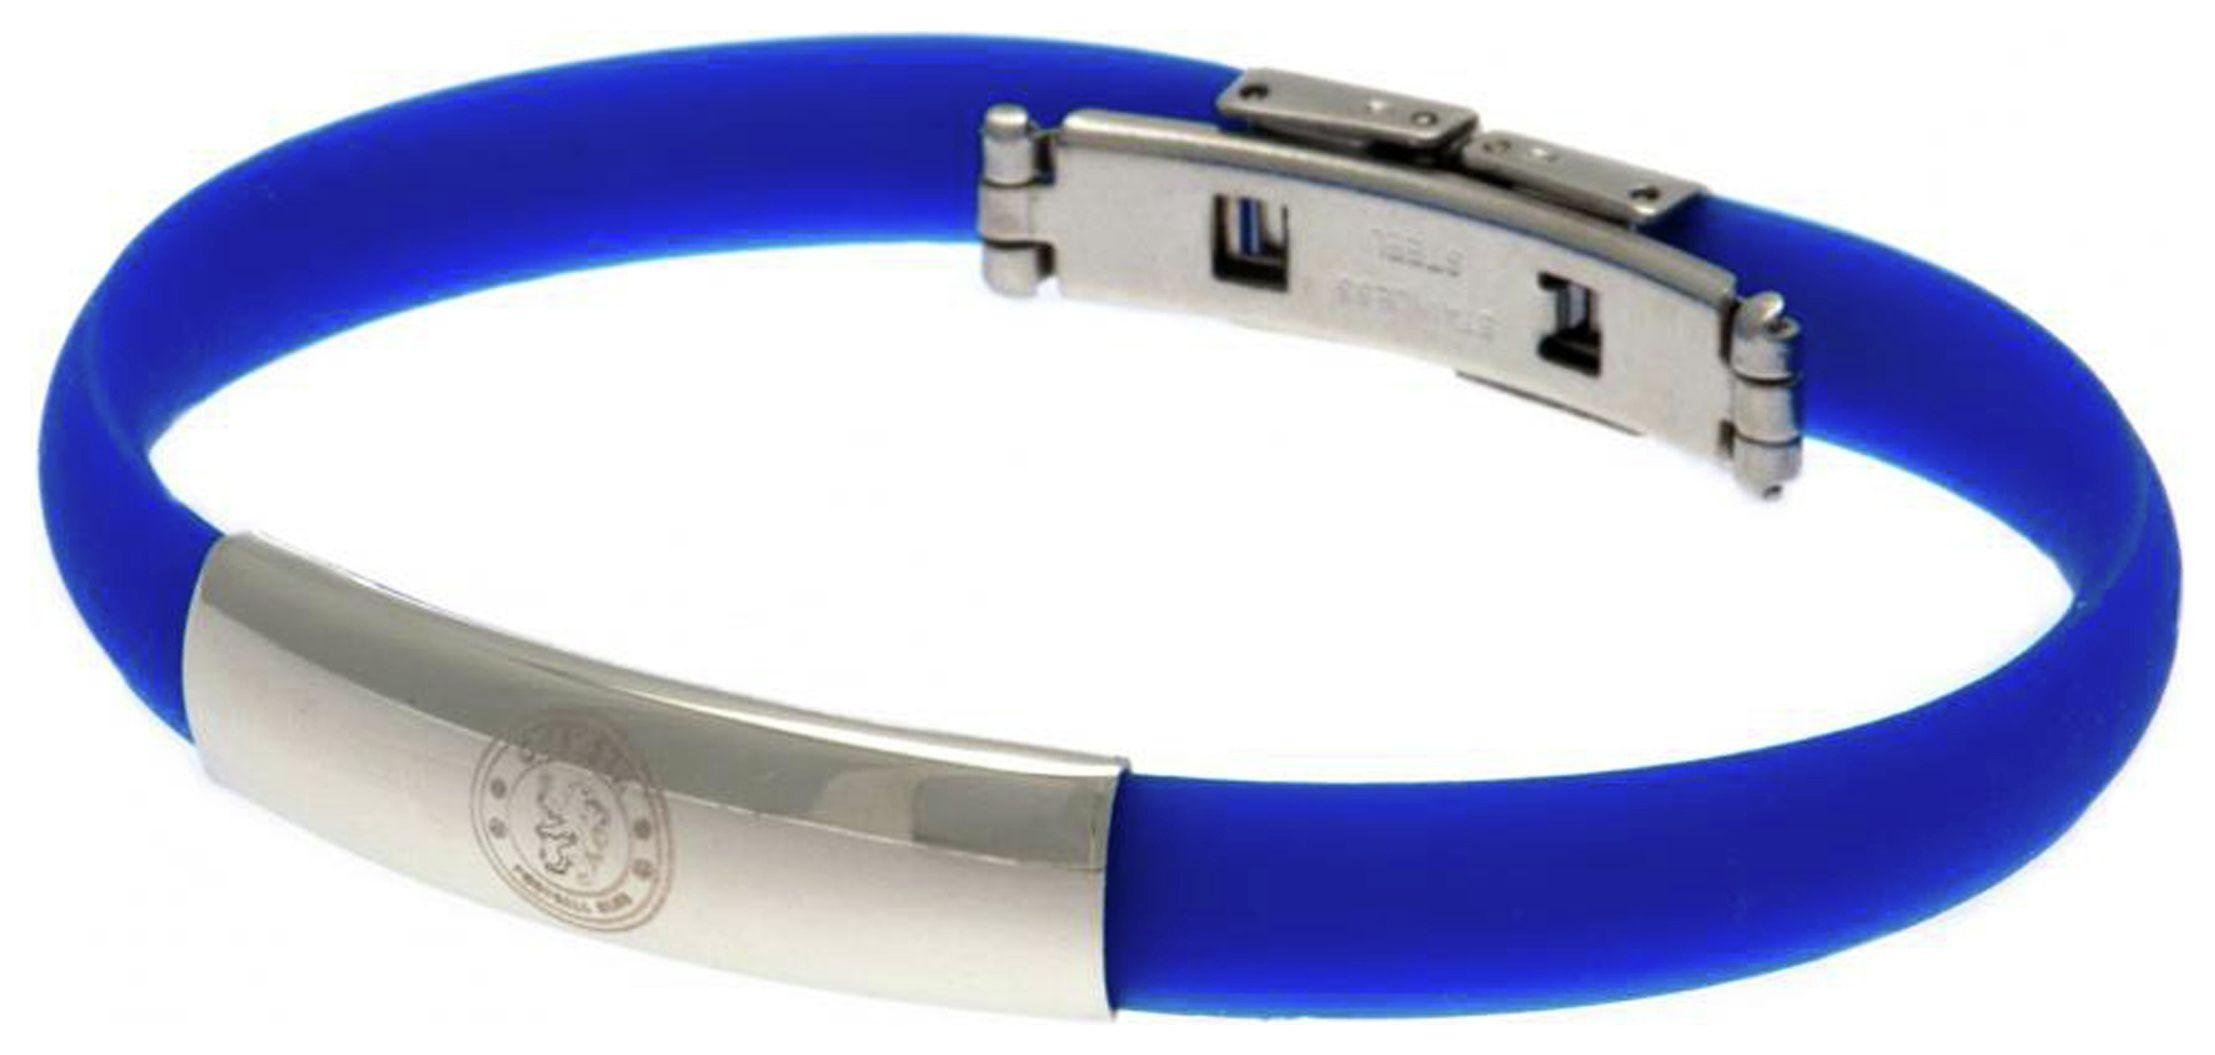 Stainless Steel and Rubber Chelsea Bracelet.